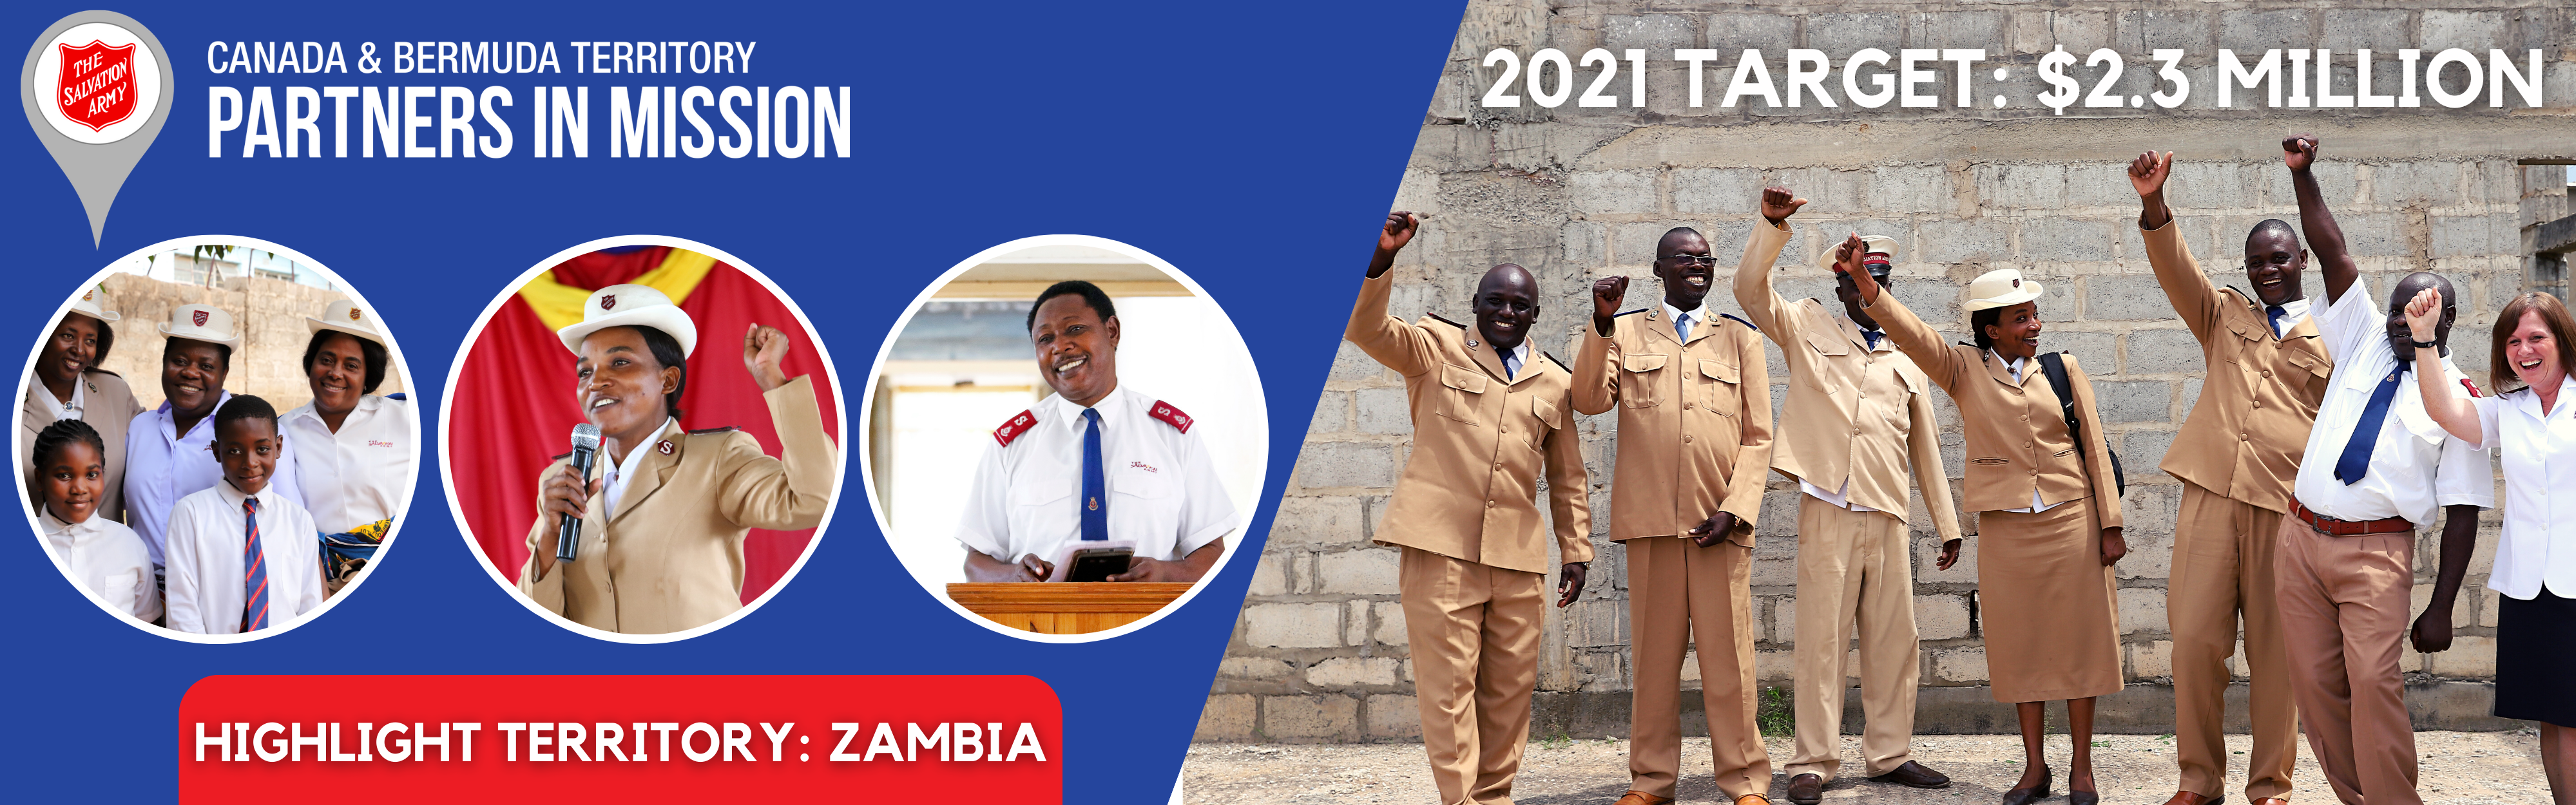 Partners in Mission 2021 Banner Highlighting Zambia graphic